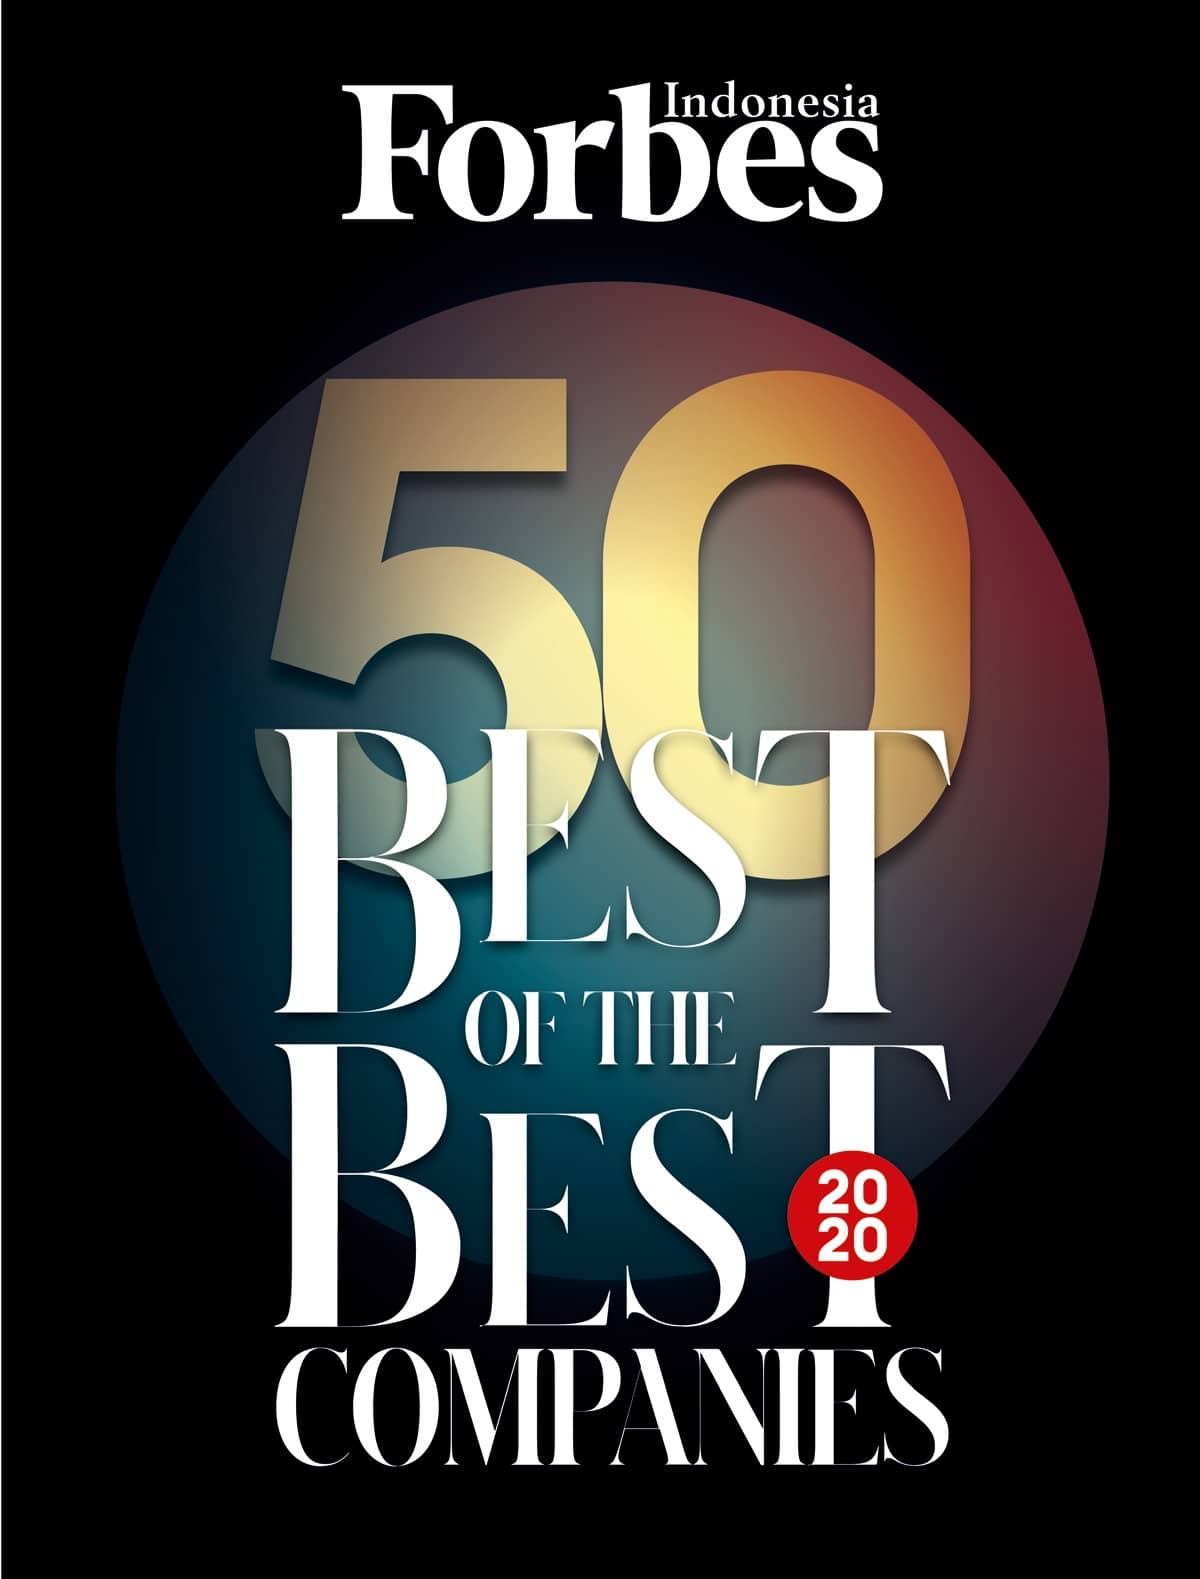 50 BEST OF THE BEST 2020 COMPANIES